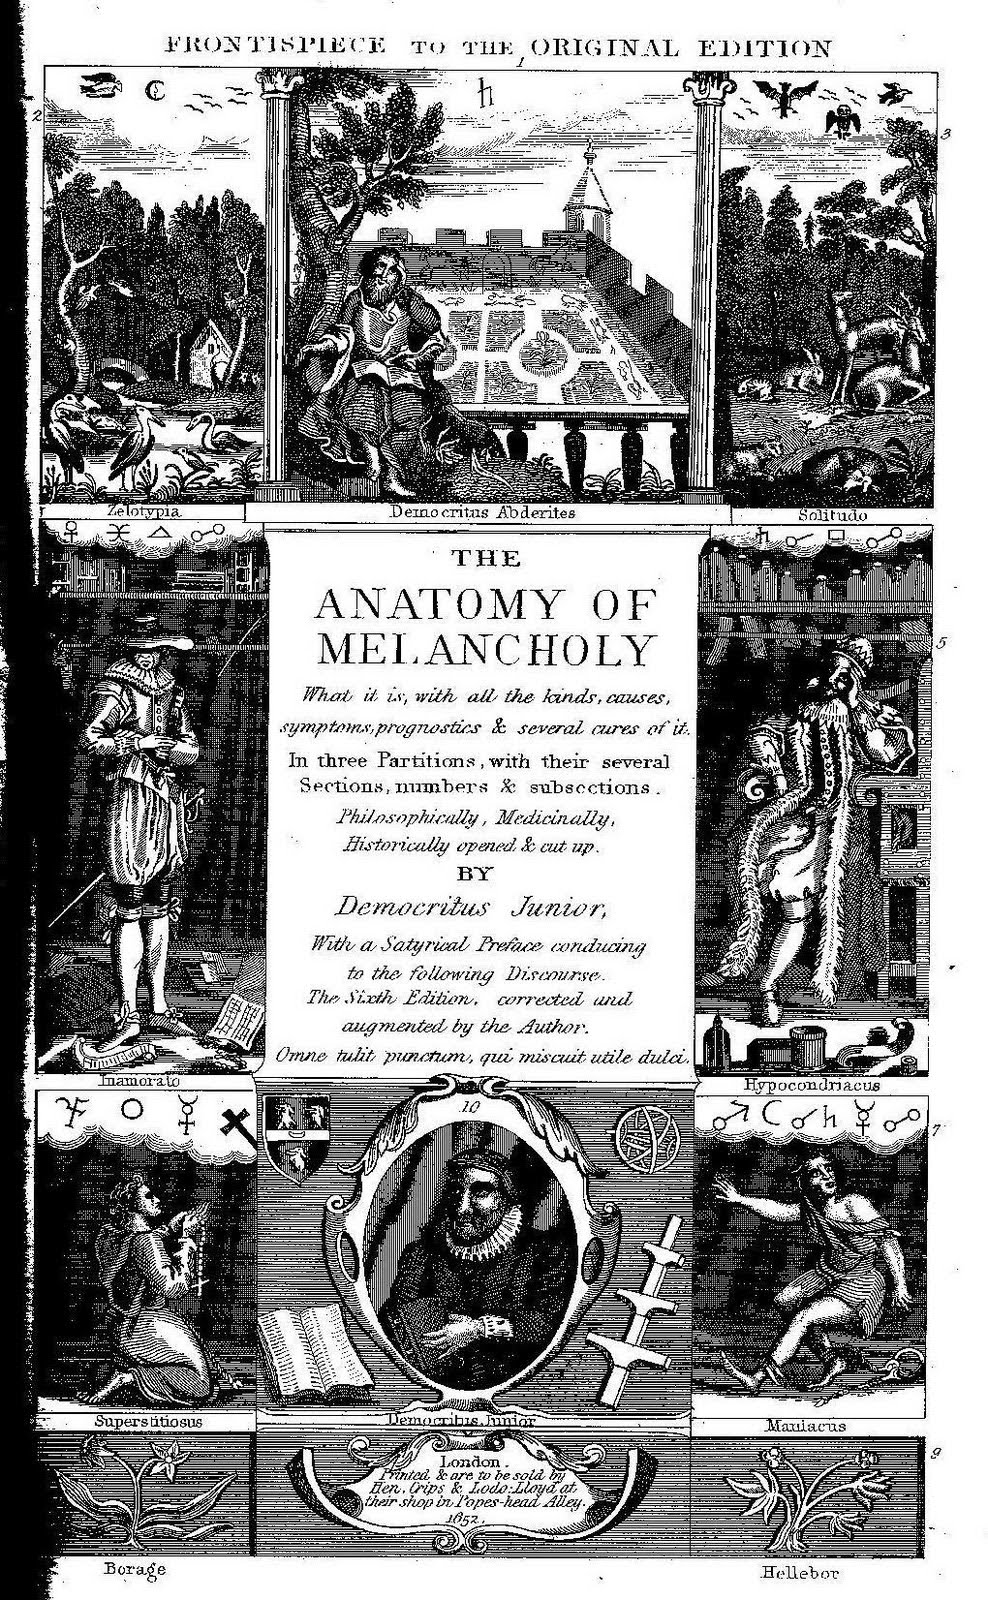 Anatomy of melancholy frontispiece.jpeg